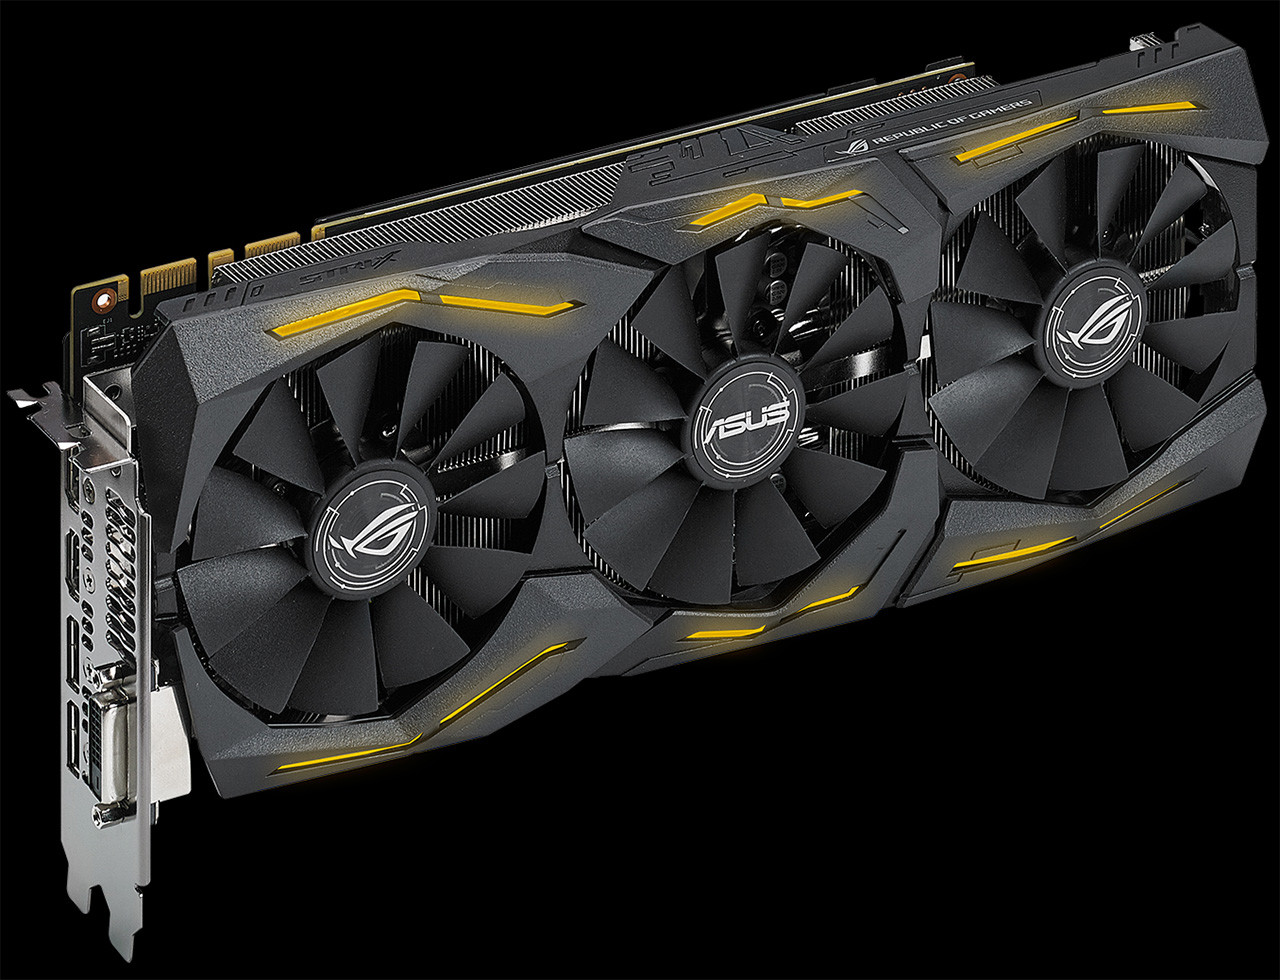 ASUS Announces the ROG STRIX GeForce GTX 1080 | TechPowerUp